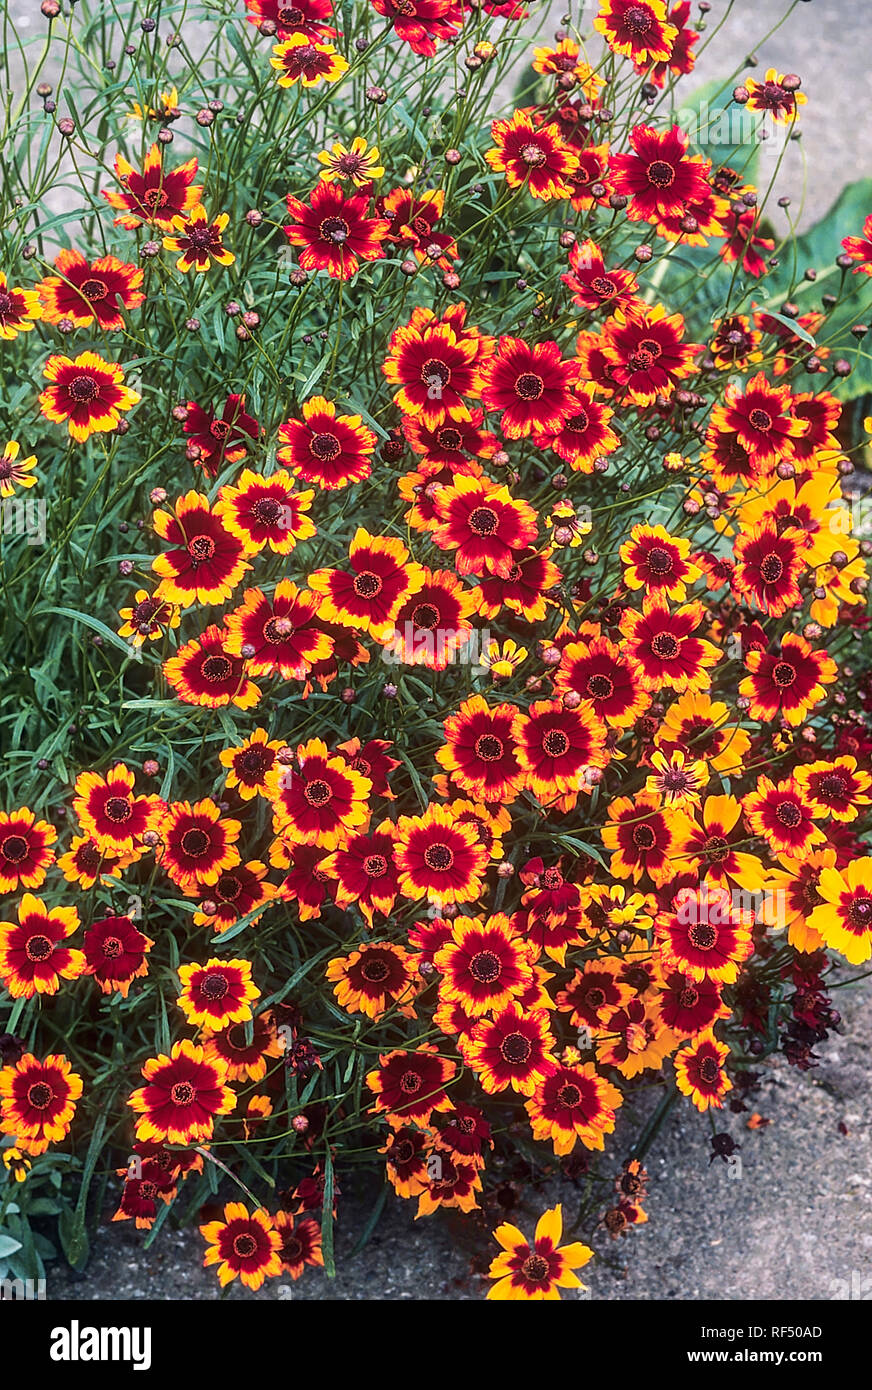 Coreopsis tinctoria with lots of flowers in full bloom  An annual that is ideal for a sunny herbaceous border and make a good cut flower - Stock Image